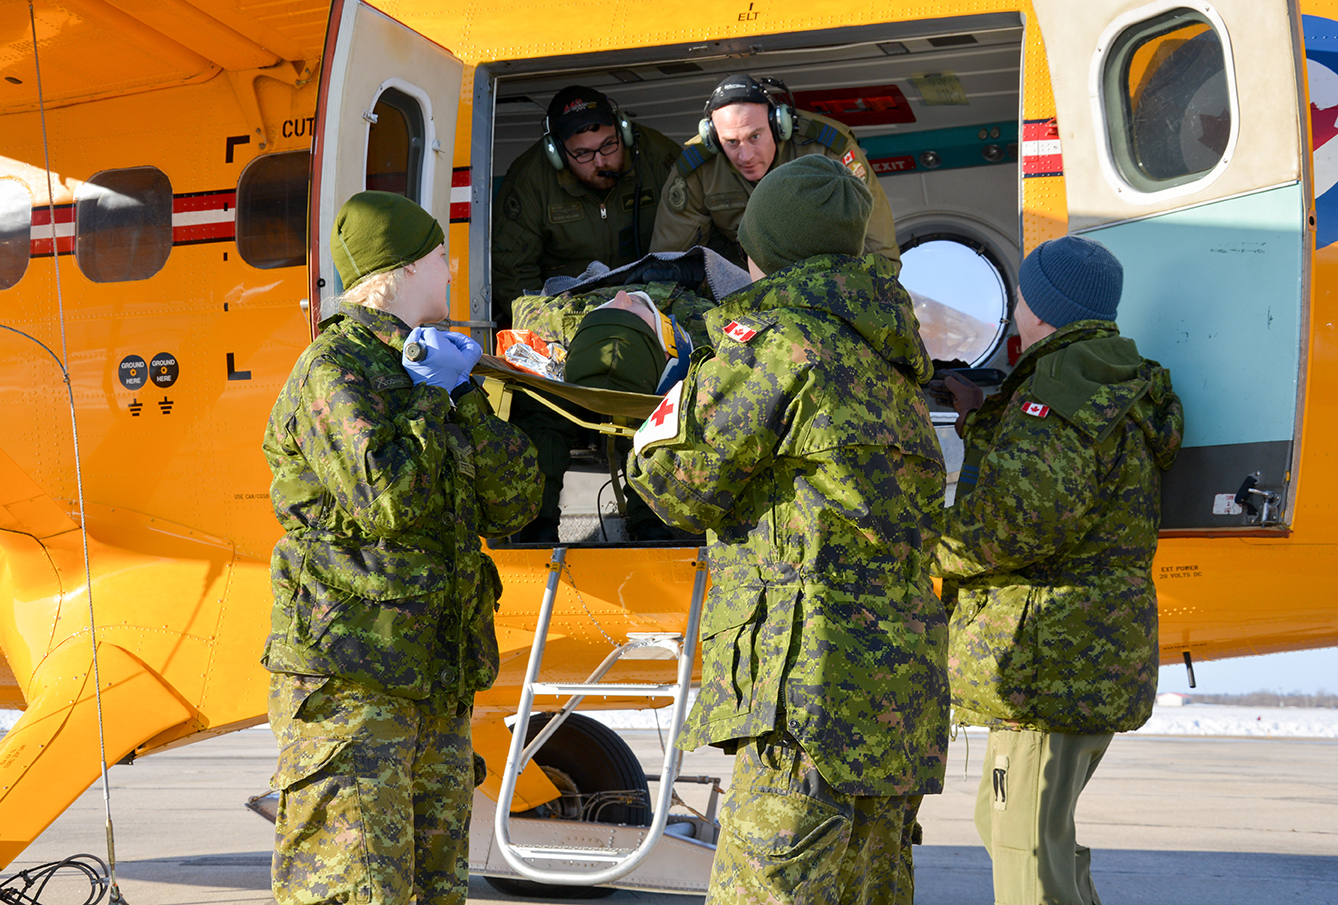 Members from Winnipeg's 17 Field Ambulance practice a casualty evacuation (CASEVAC) drill as part of Exercise ARCTIC BISON in Gimli, Manitoba on February 25, 2017. Photo: 2nd Lieutenant Stacie Nelles, 38 Canadian Brigade Group Public Affairs. ©2017 DND/MDN Canada.